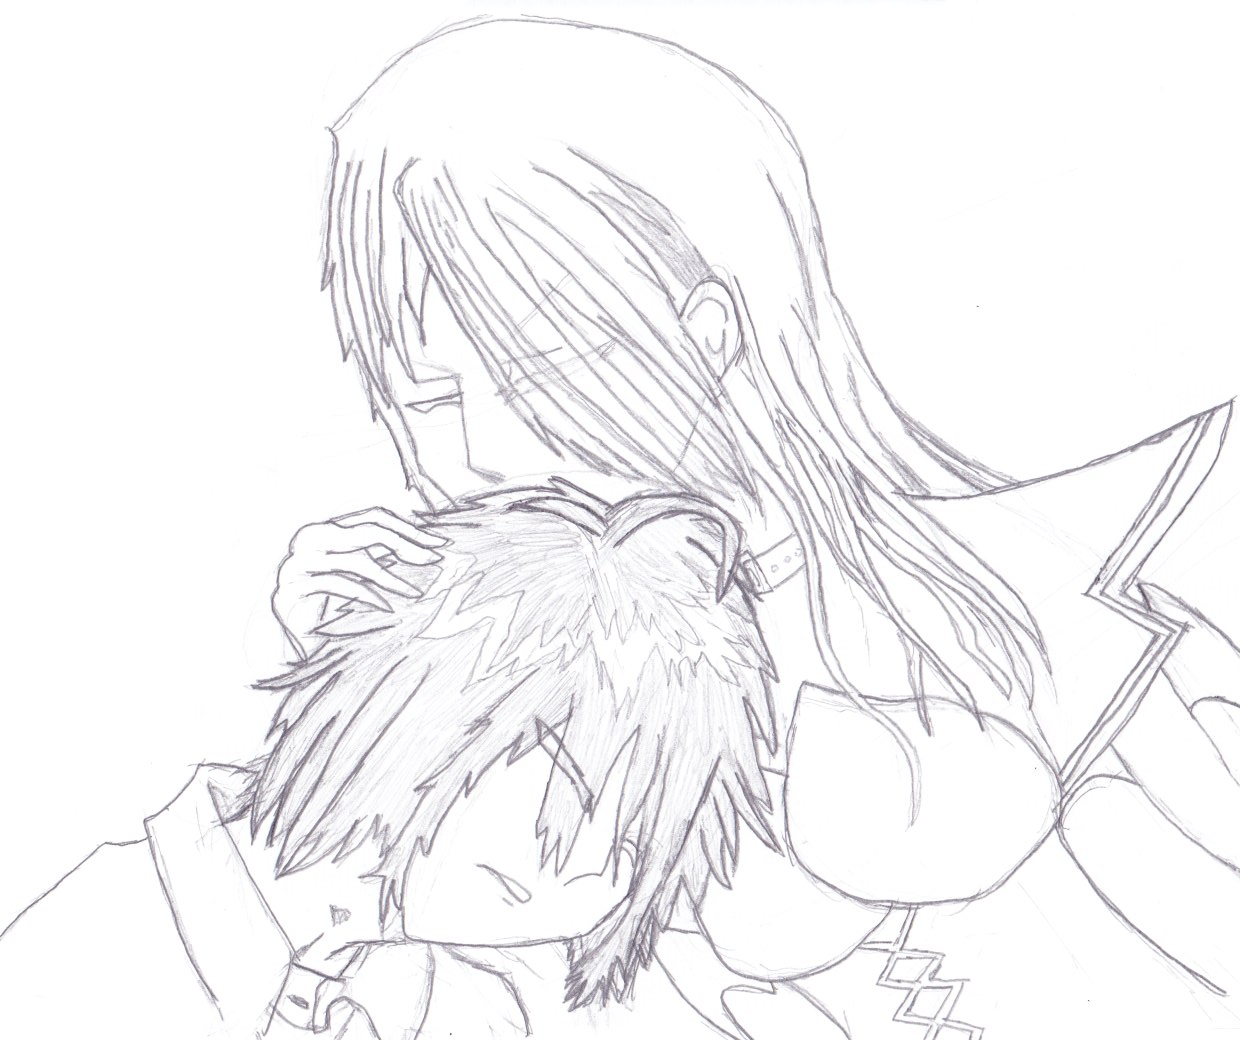 First shot at a shipping sketch. Crop only